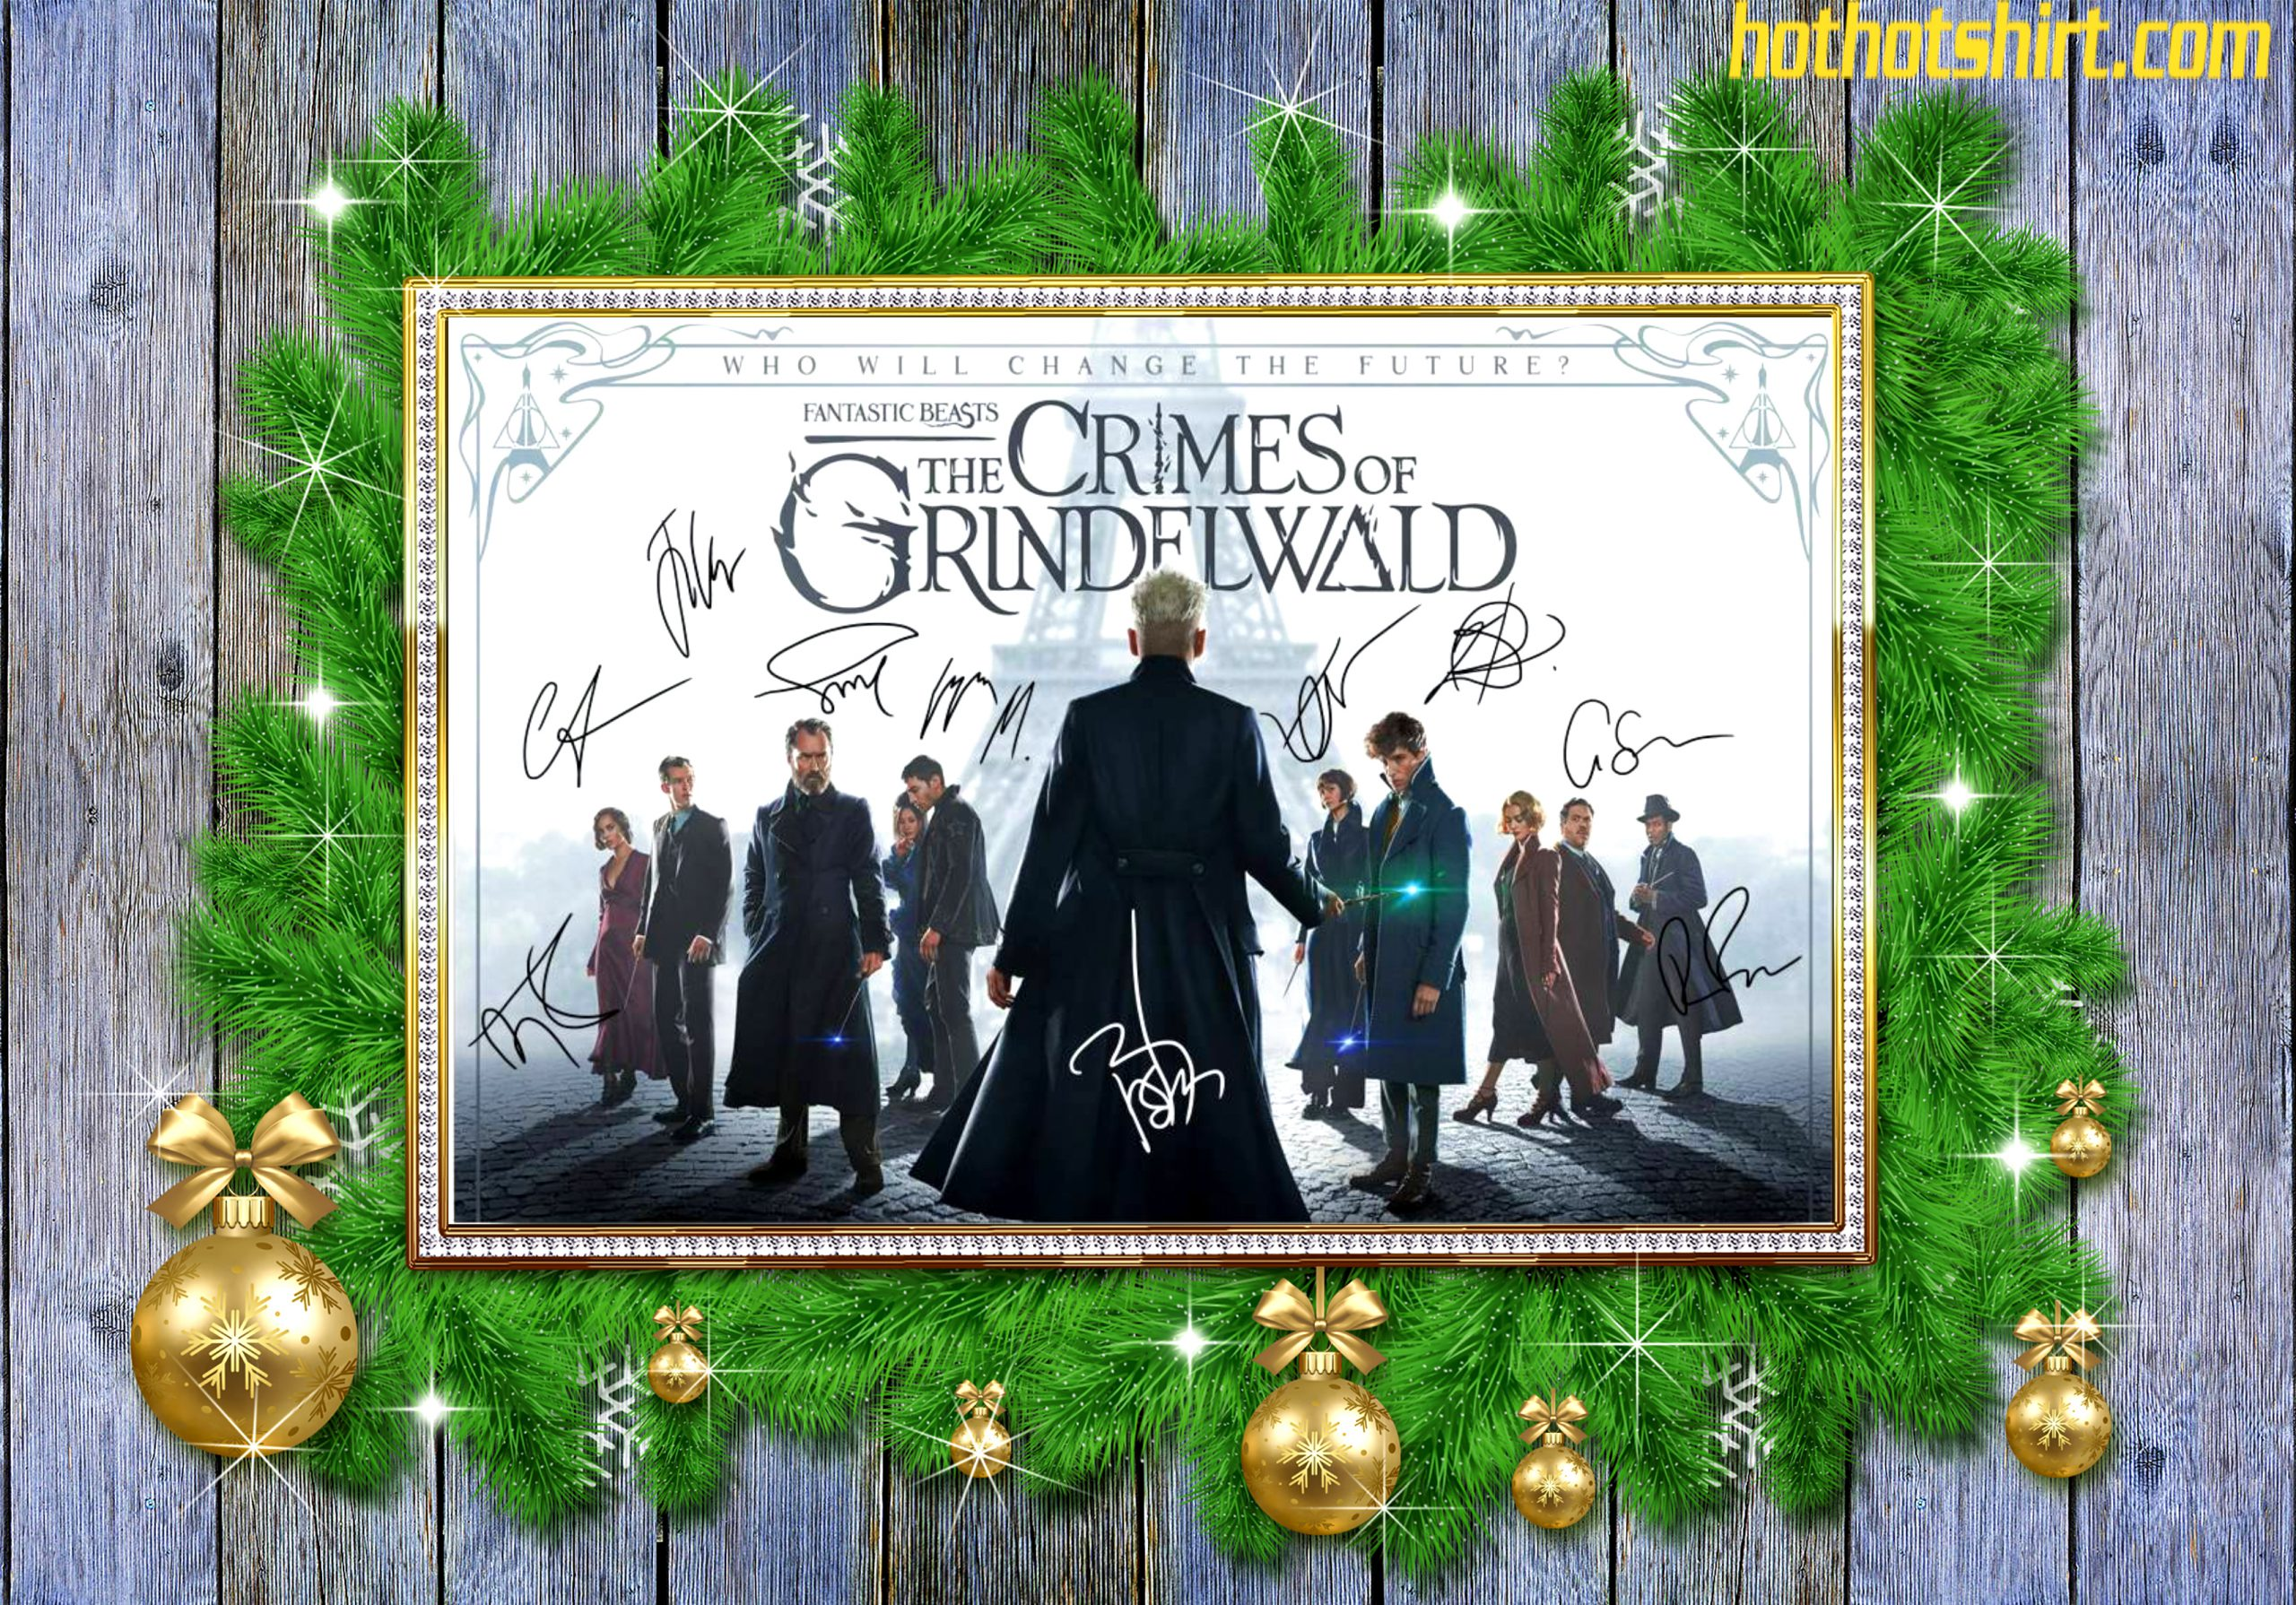 Fantastic beasts the crimes of grindelwald signature poster 2